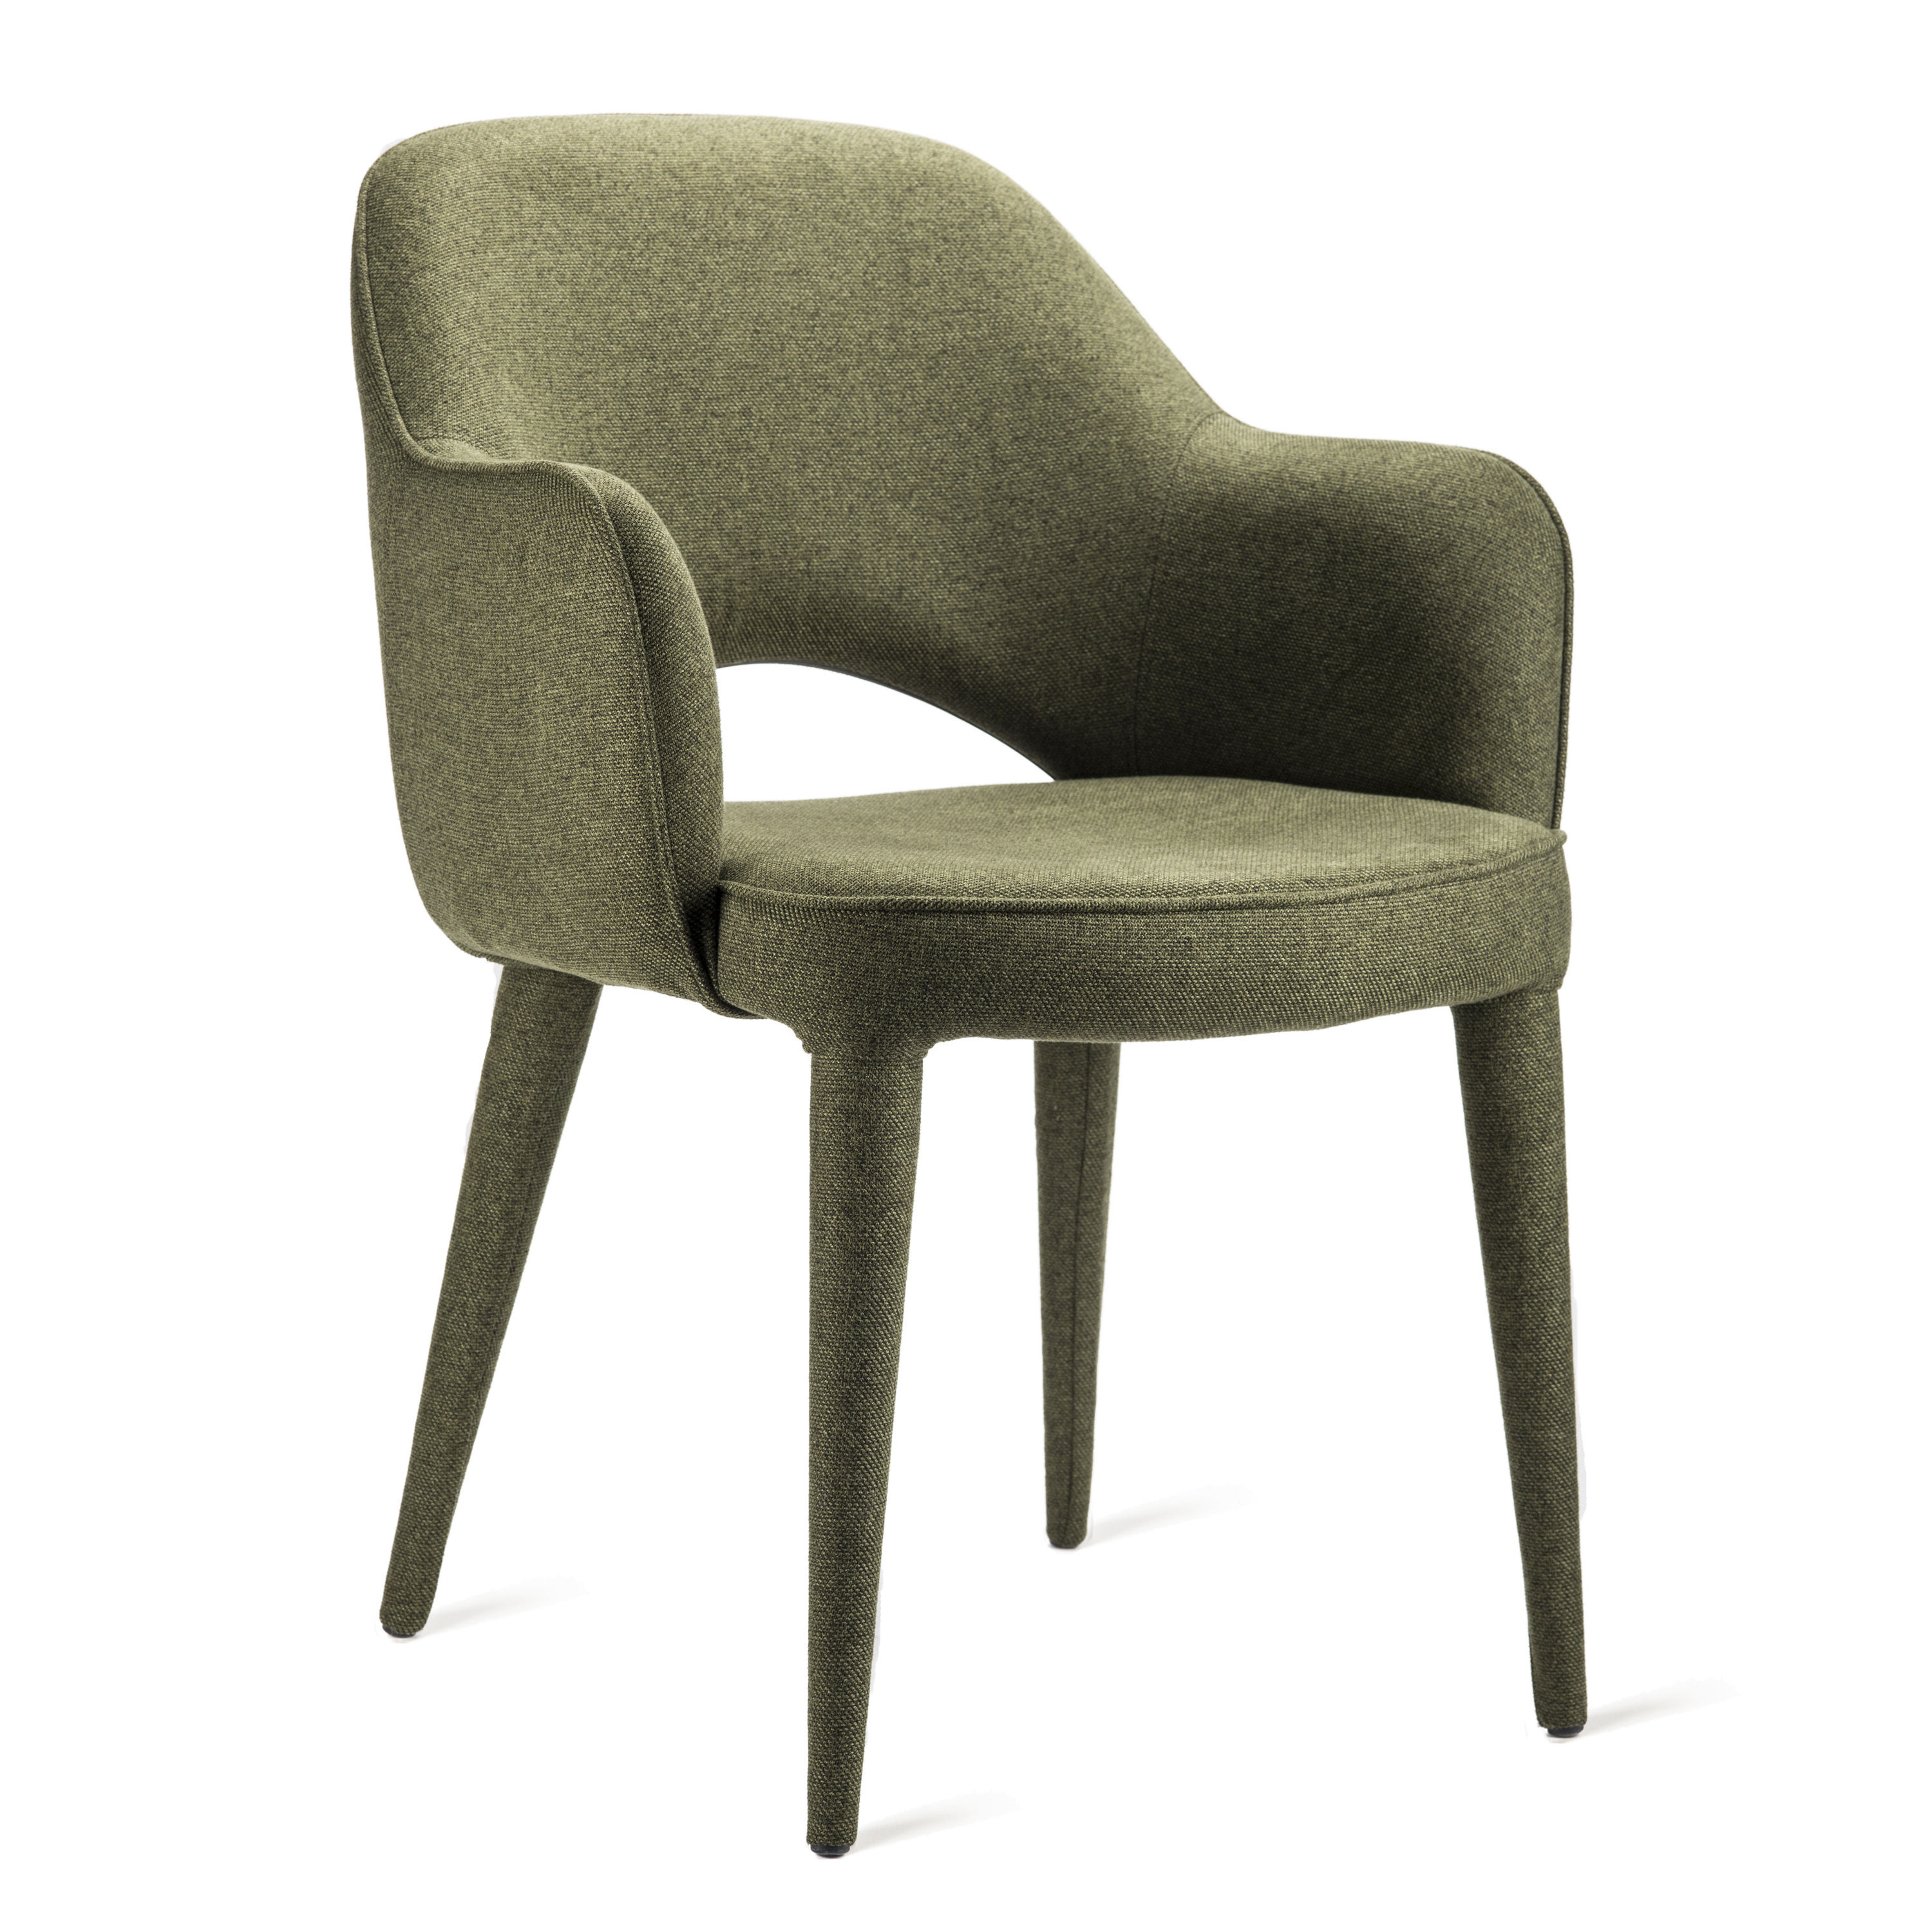 Furniture - Chairs - Cosy Padded armchair - / Fabric by Pols Potten - Forest green - Foam, Metal, Polyester fabric